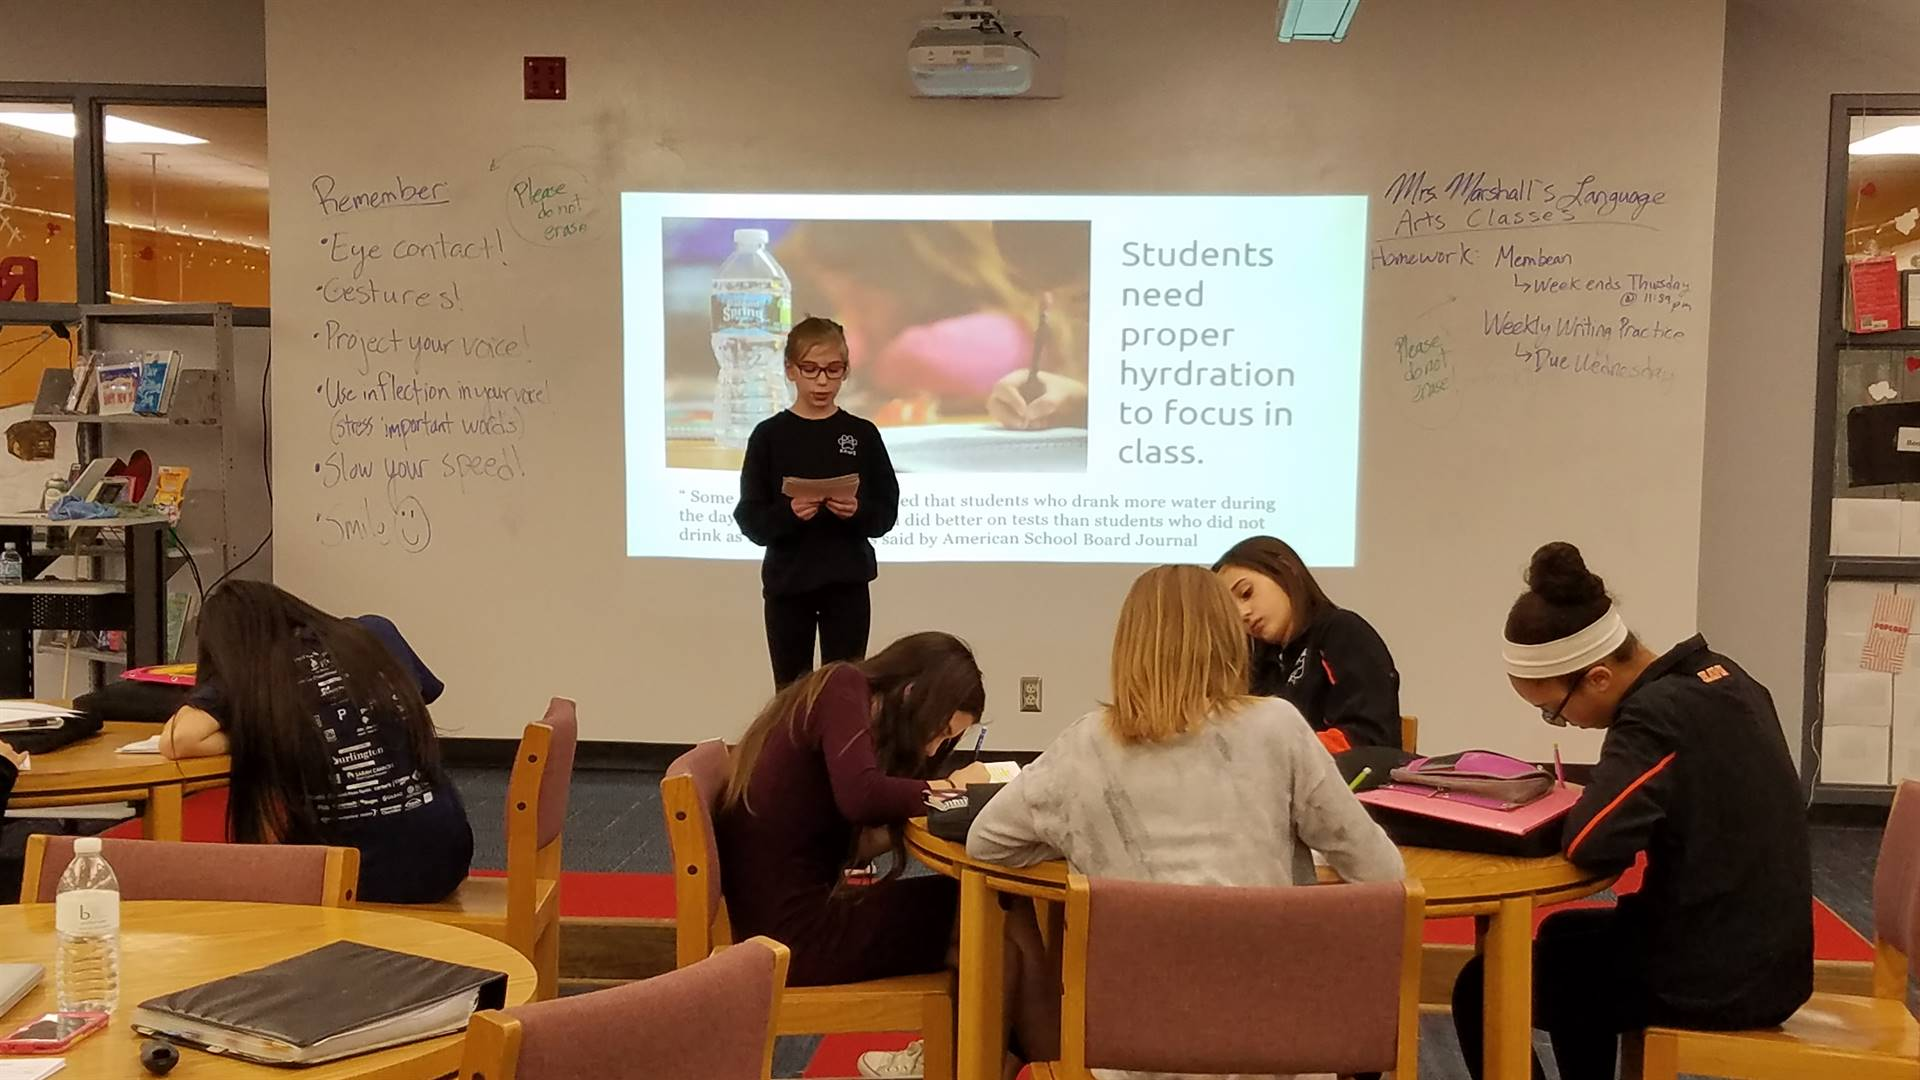 Mrs. Marshall's students persuade their audience to change a school handbook policy.